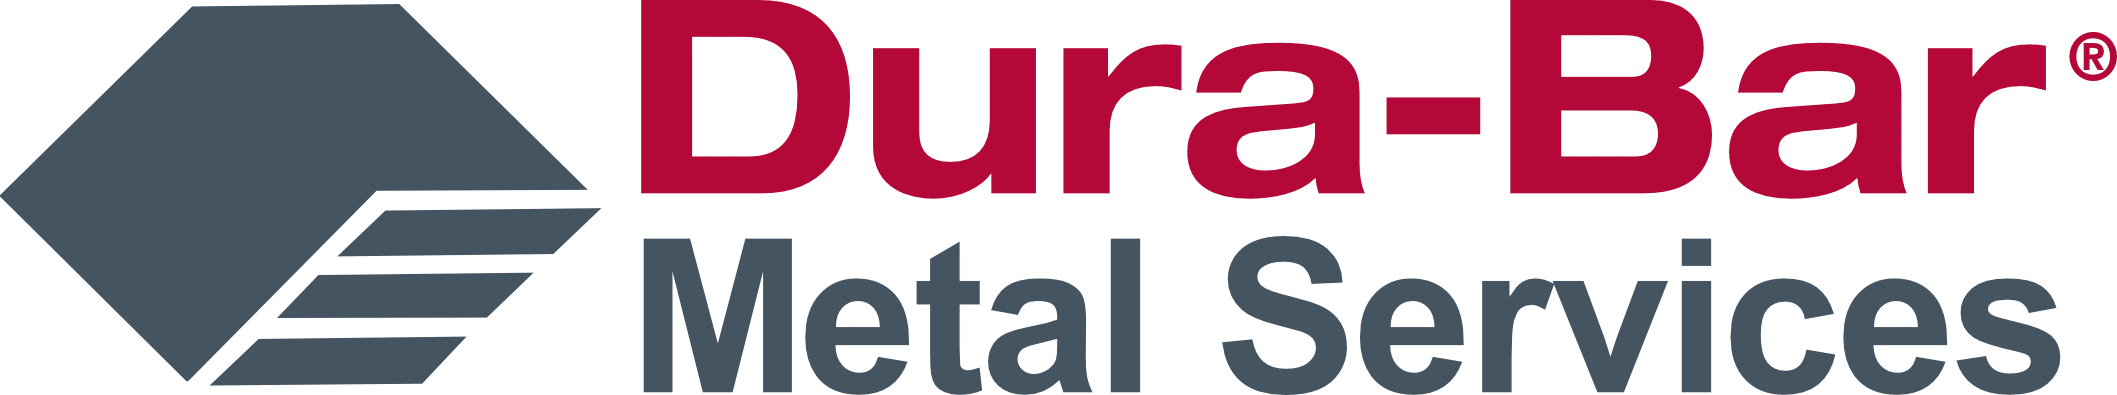 Dura-Bar Metal Services Primary Logo